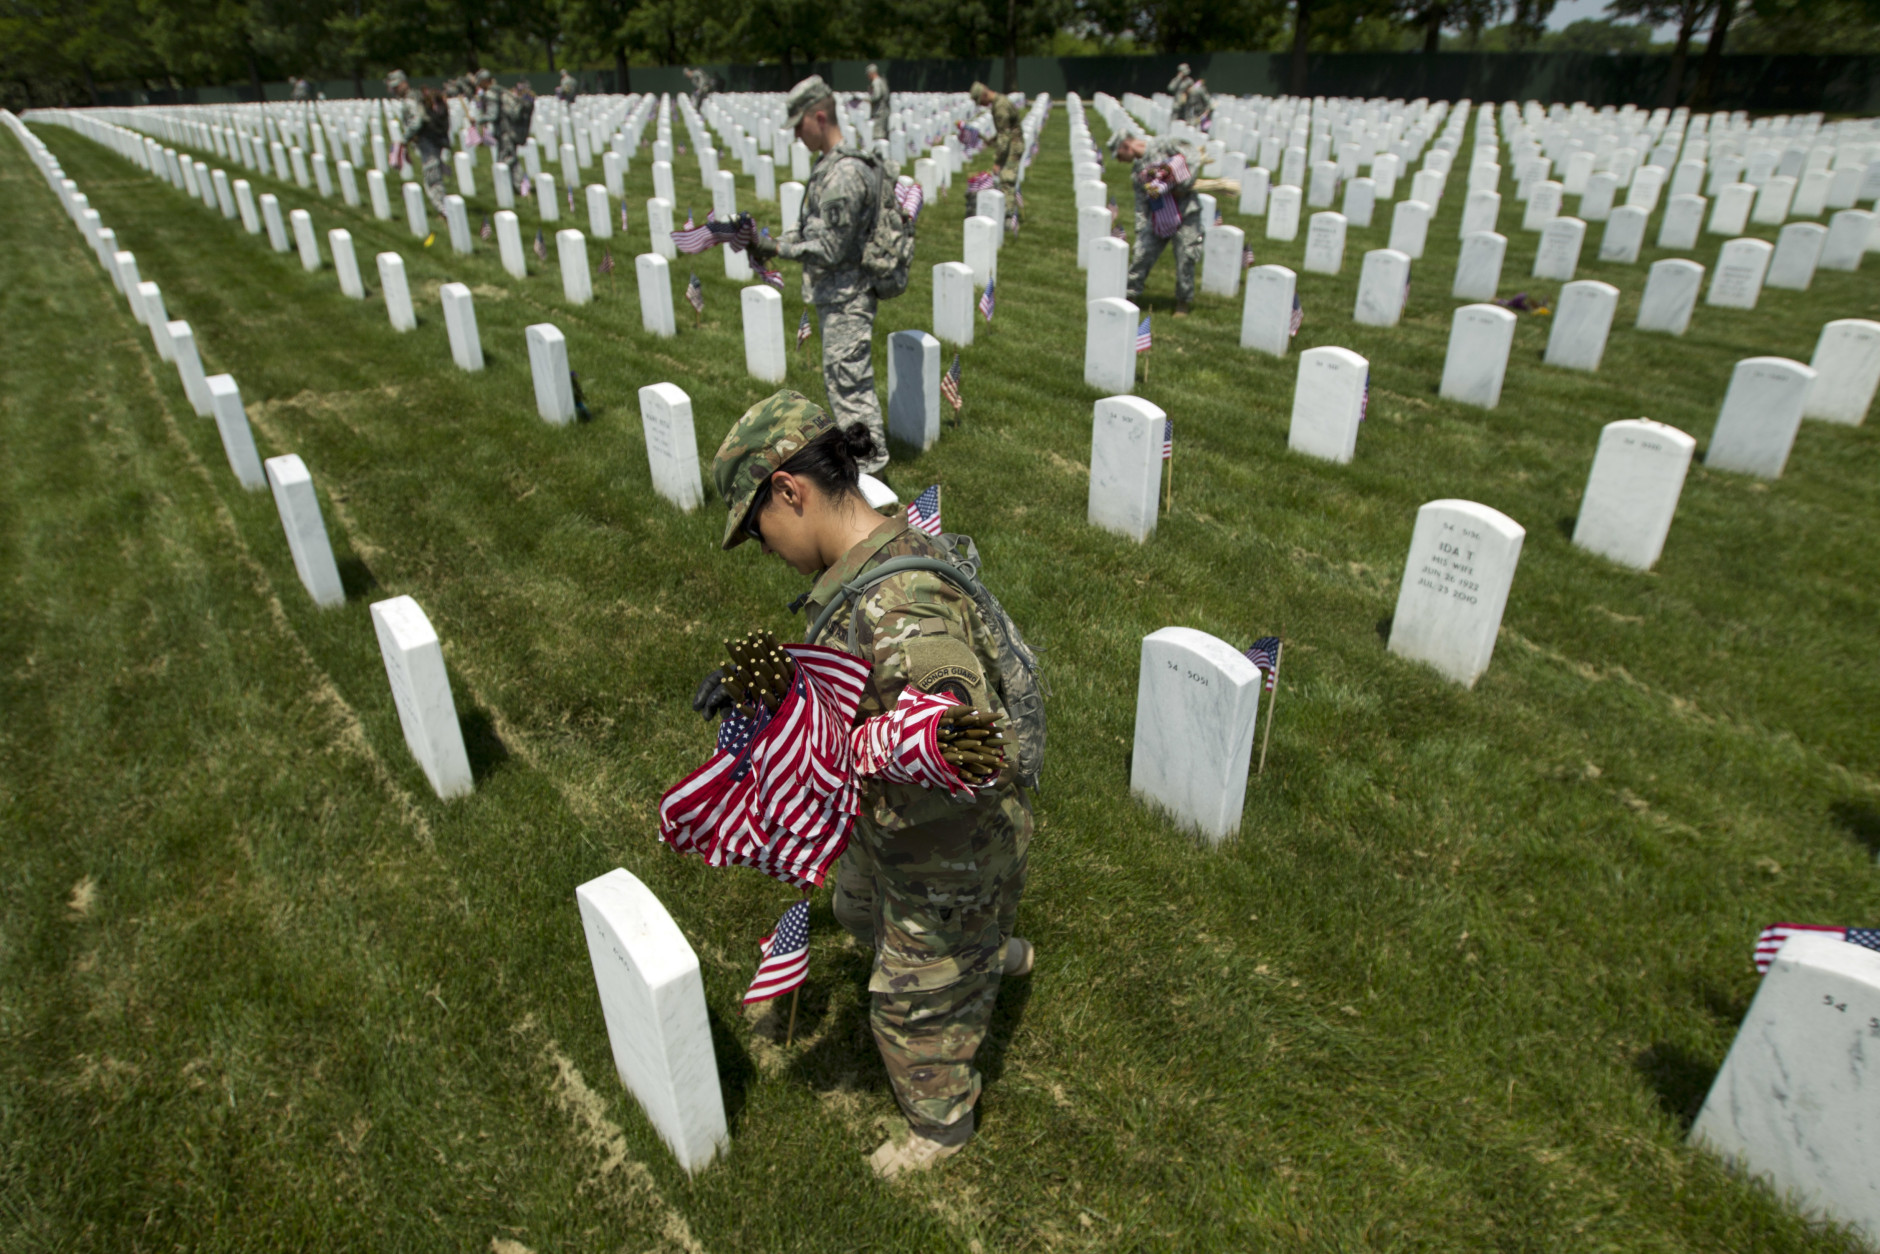 Members of the Old Guard place flags in front of every headstone at Arlington National Cemetery in Arlington, Va., Thursday, May 26, 2016. Soldiers were to place nearly a quarter of a million American flags at the cemetery as part of a Memorial Day tradition. ( AP Photo/Jose Luis Magana)